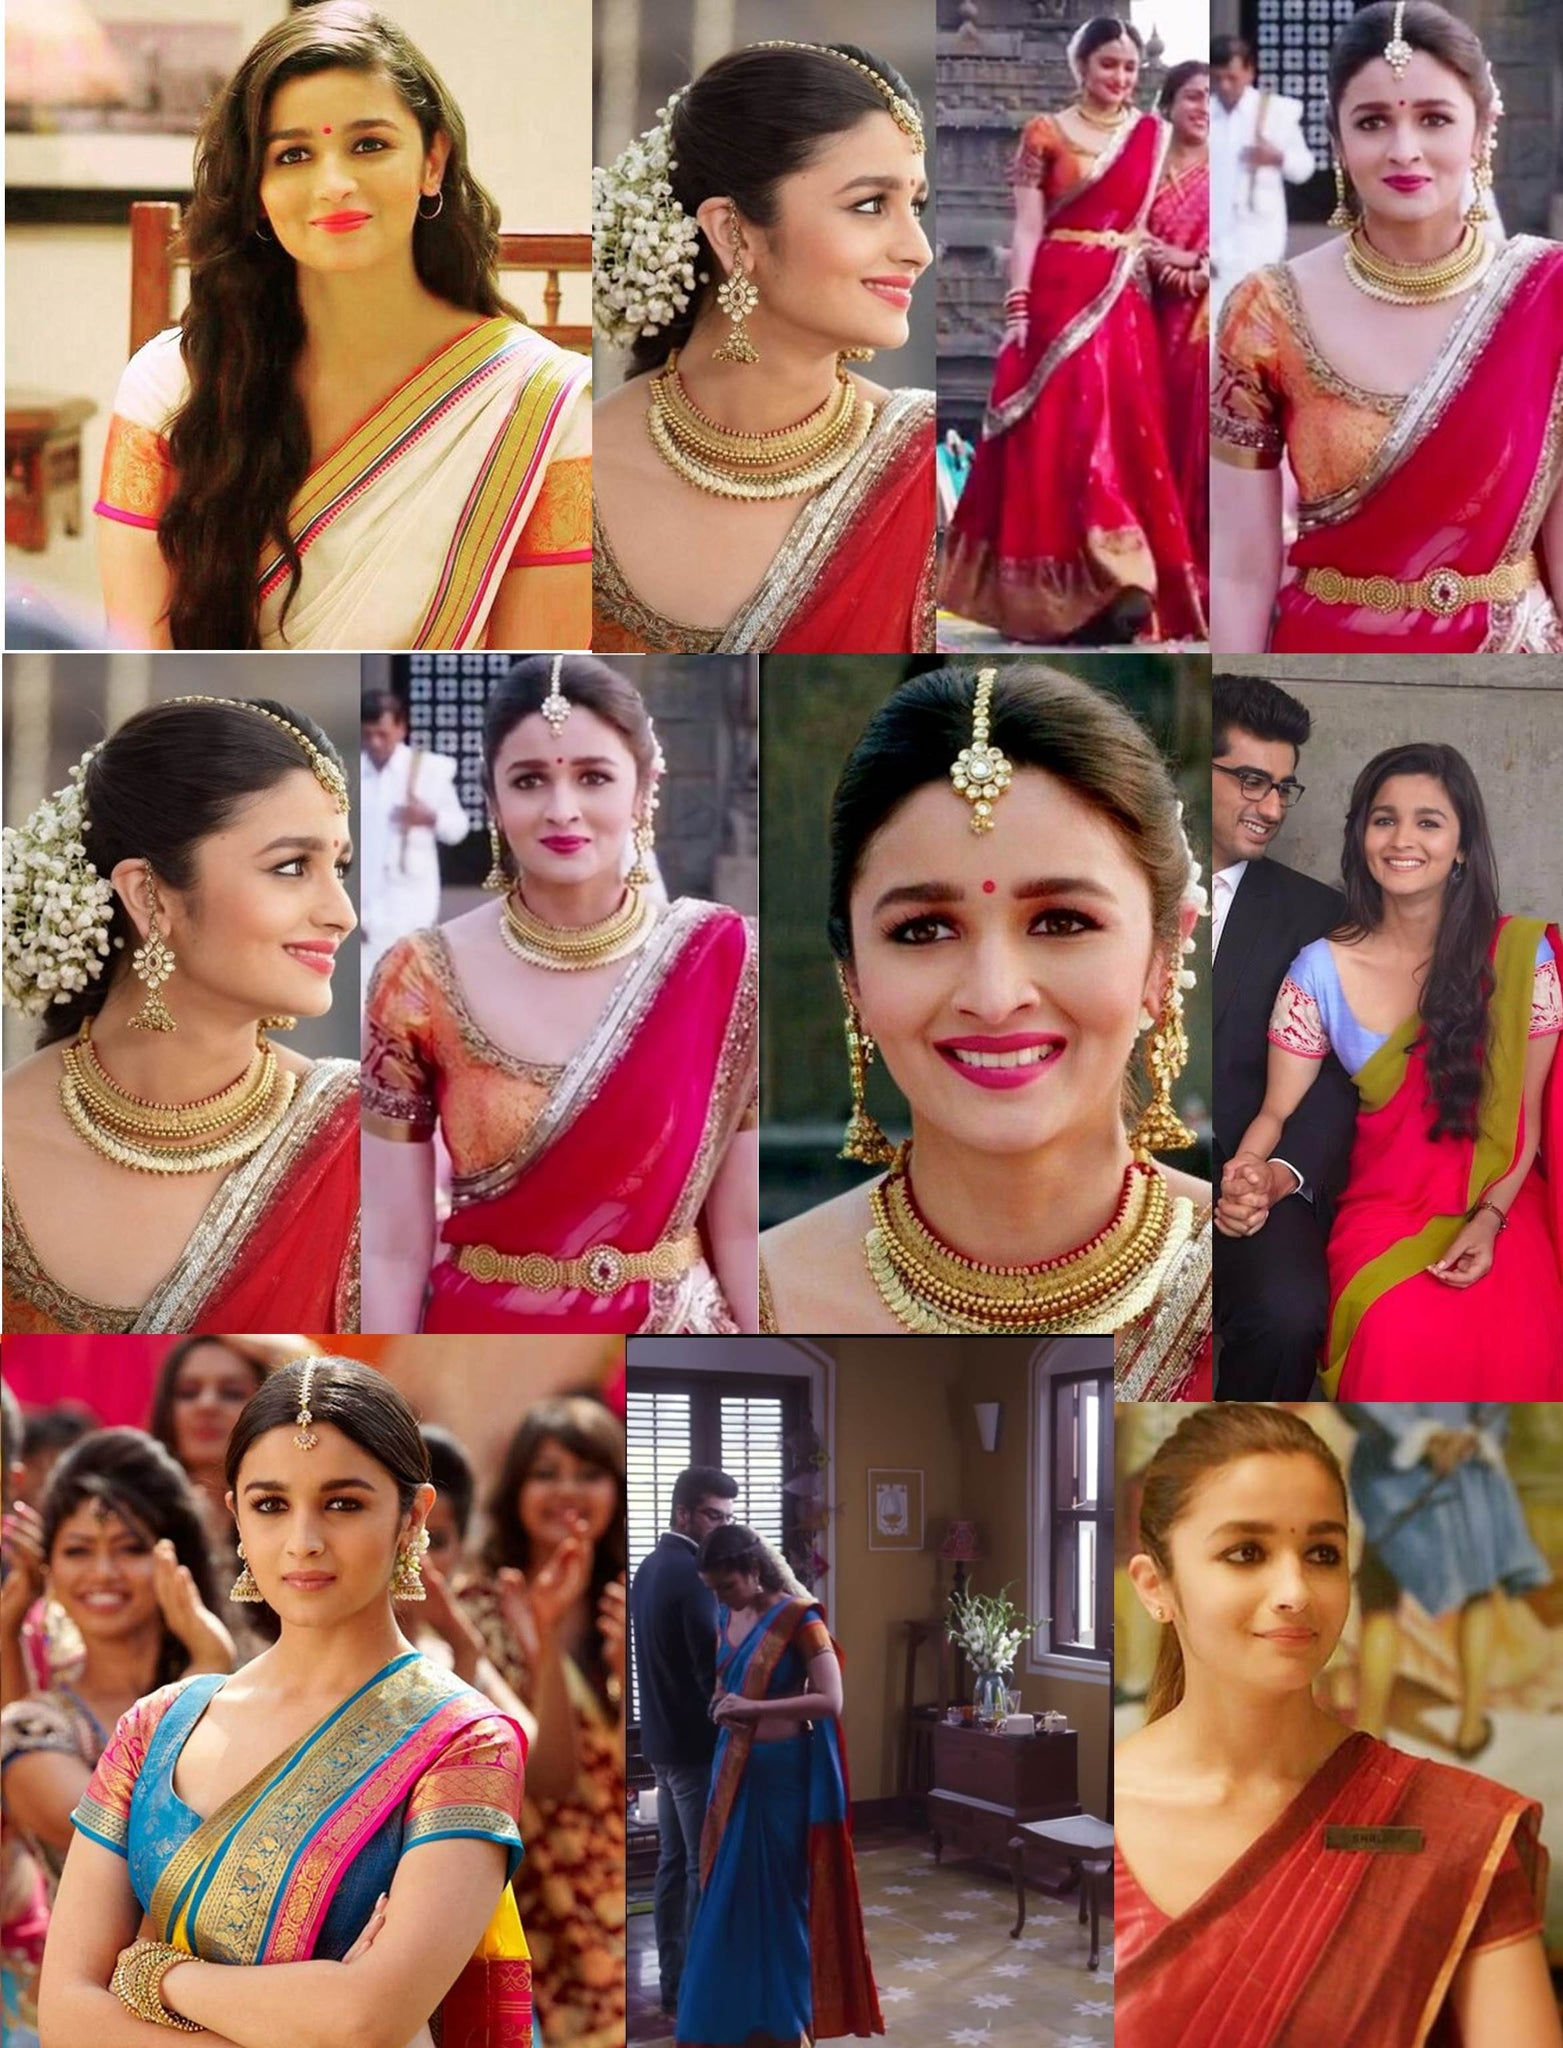 Alia Bhatt In Saree Alia Bhatt Sarees Alia Bhatt In 2 States